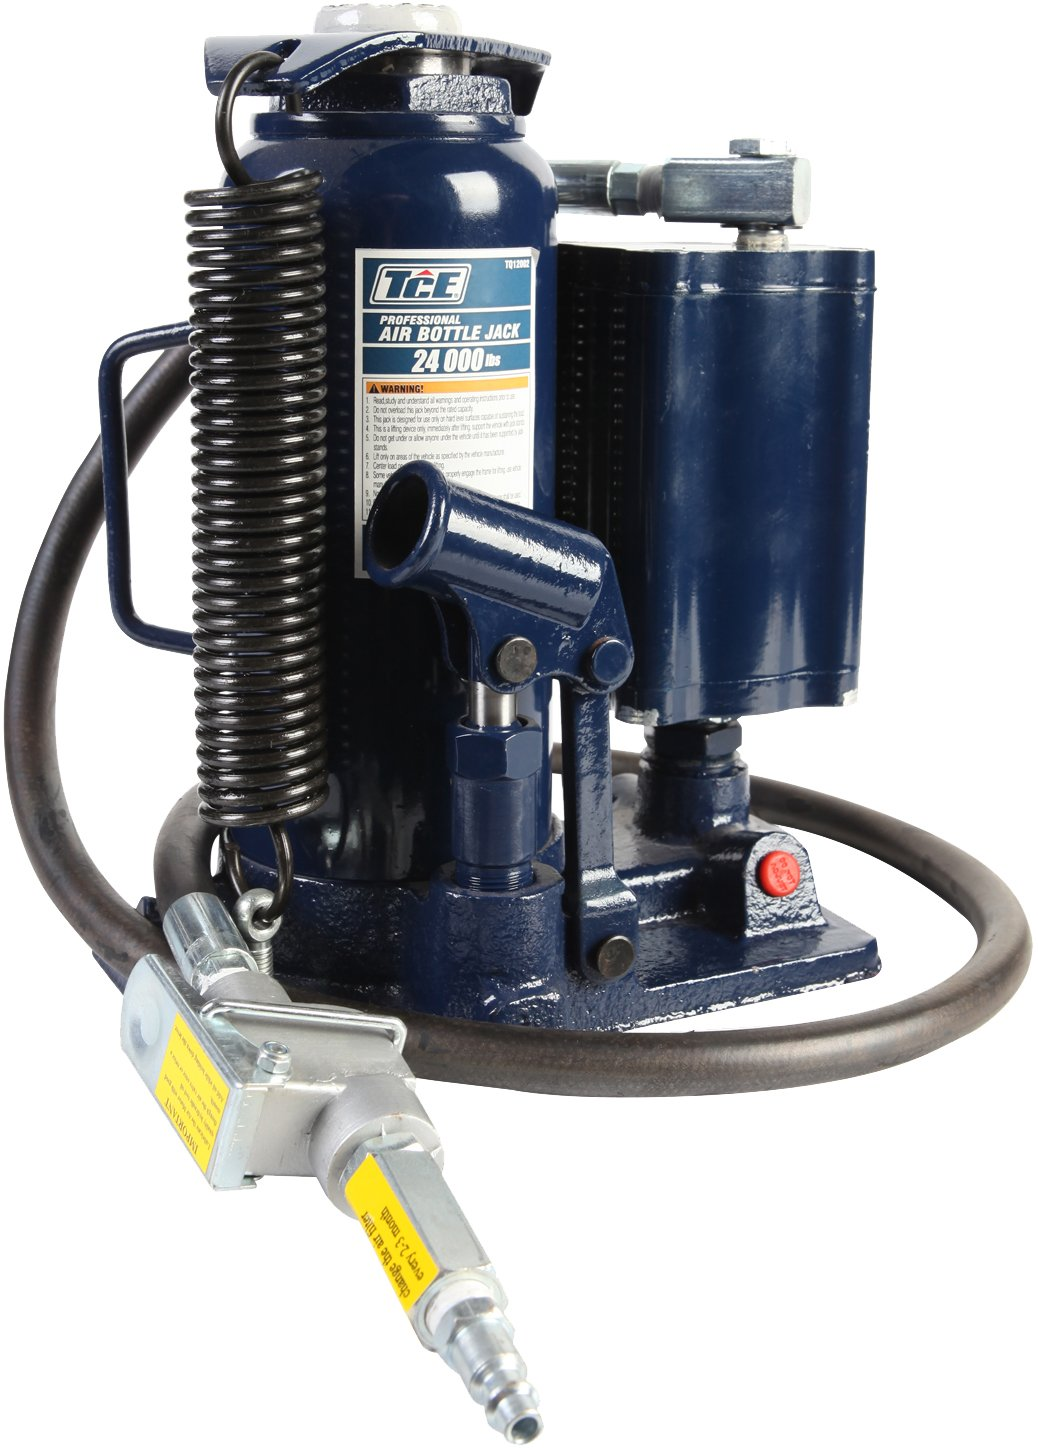 TCE Professional Grade Air Hydraulic Bottle Jack 20 Ton Capacity